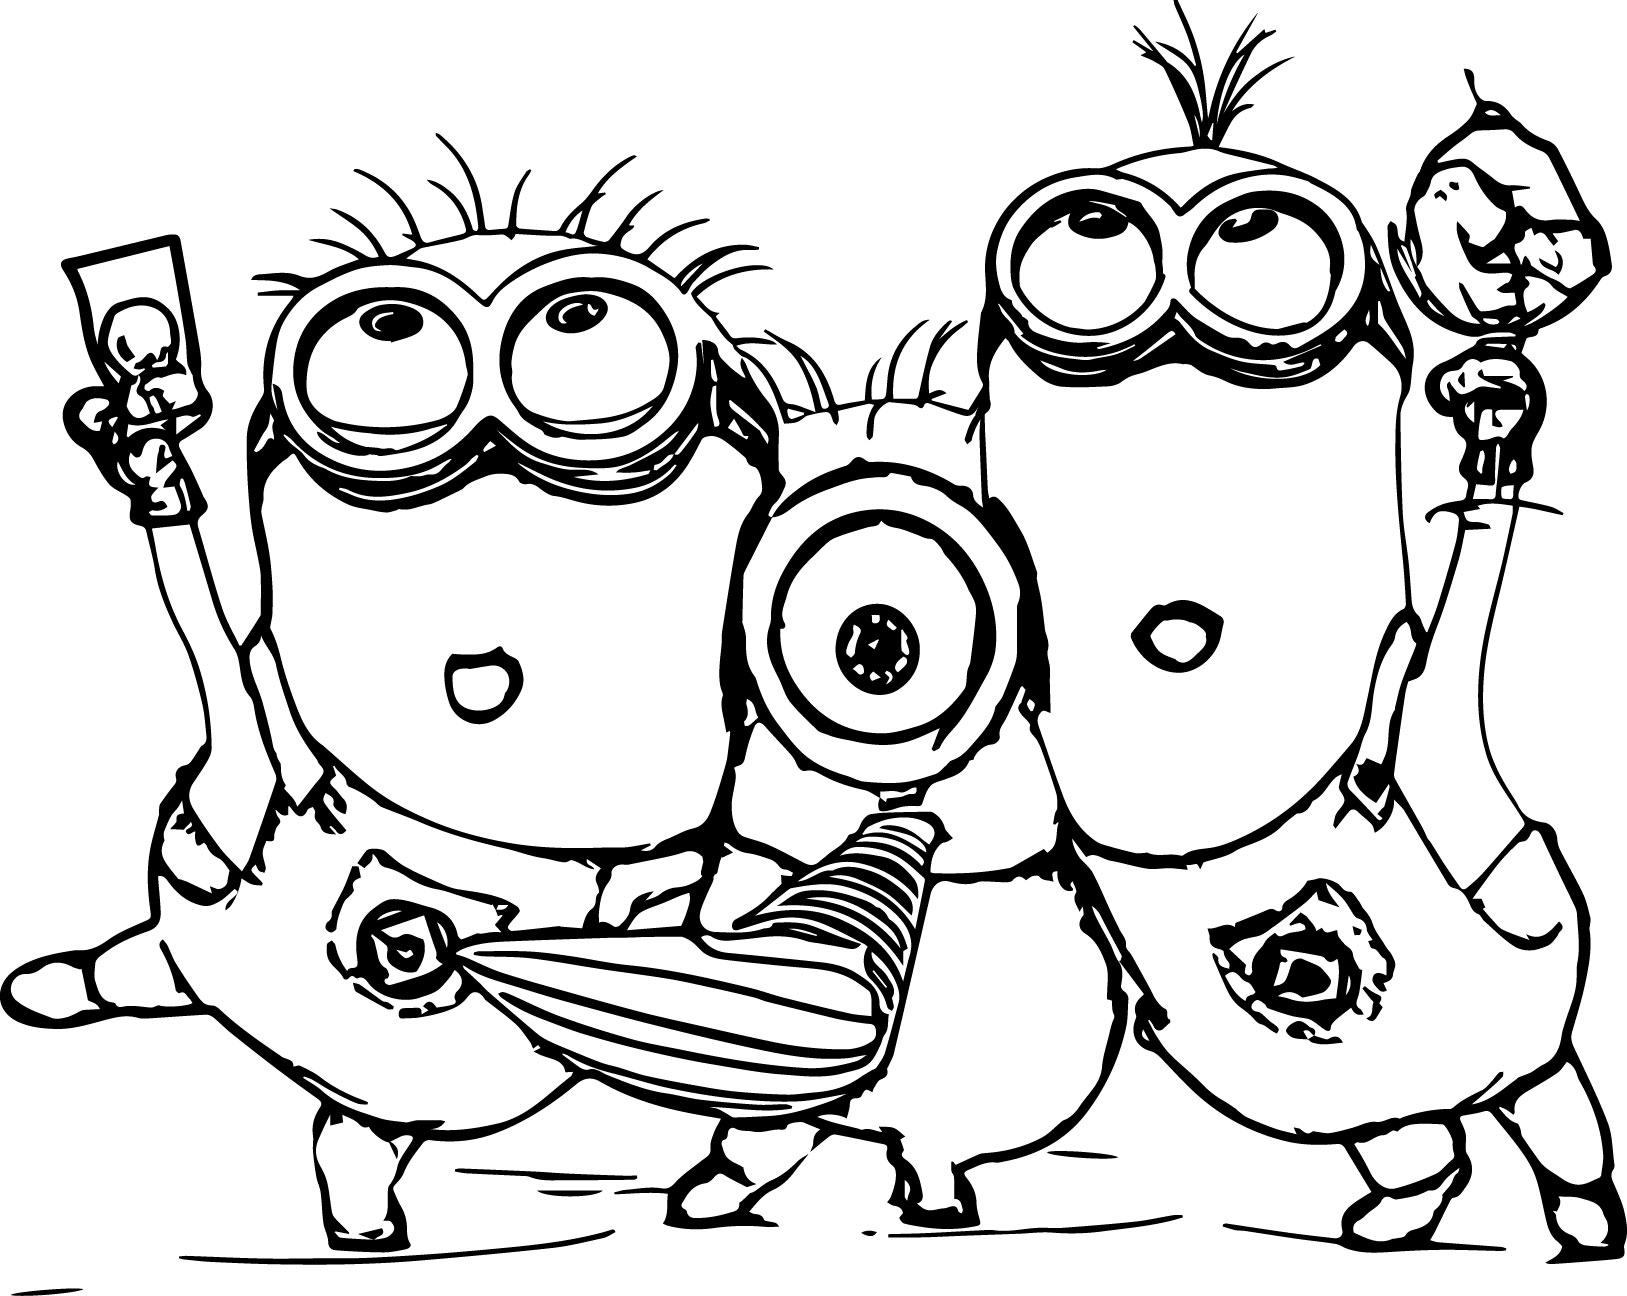 minions drawing minion outline drawing at getdrawings free download minions drawing